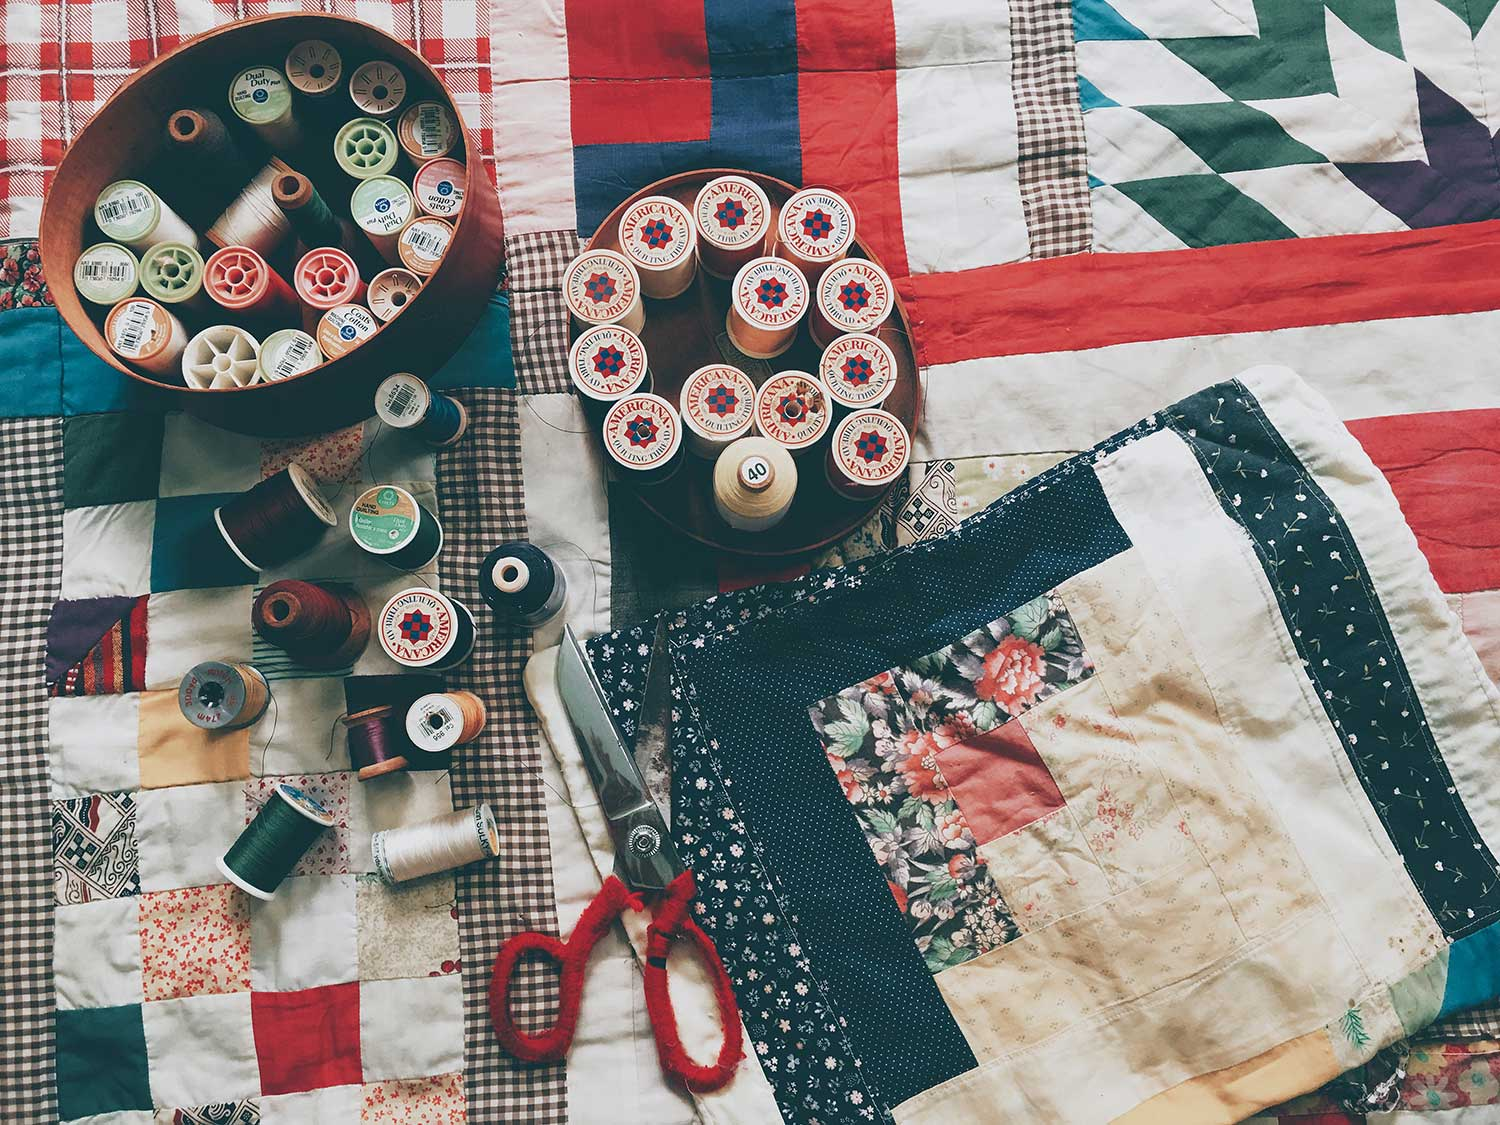 Quilting tools spread on quilt